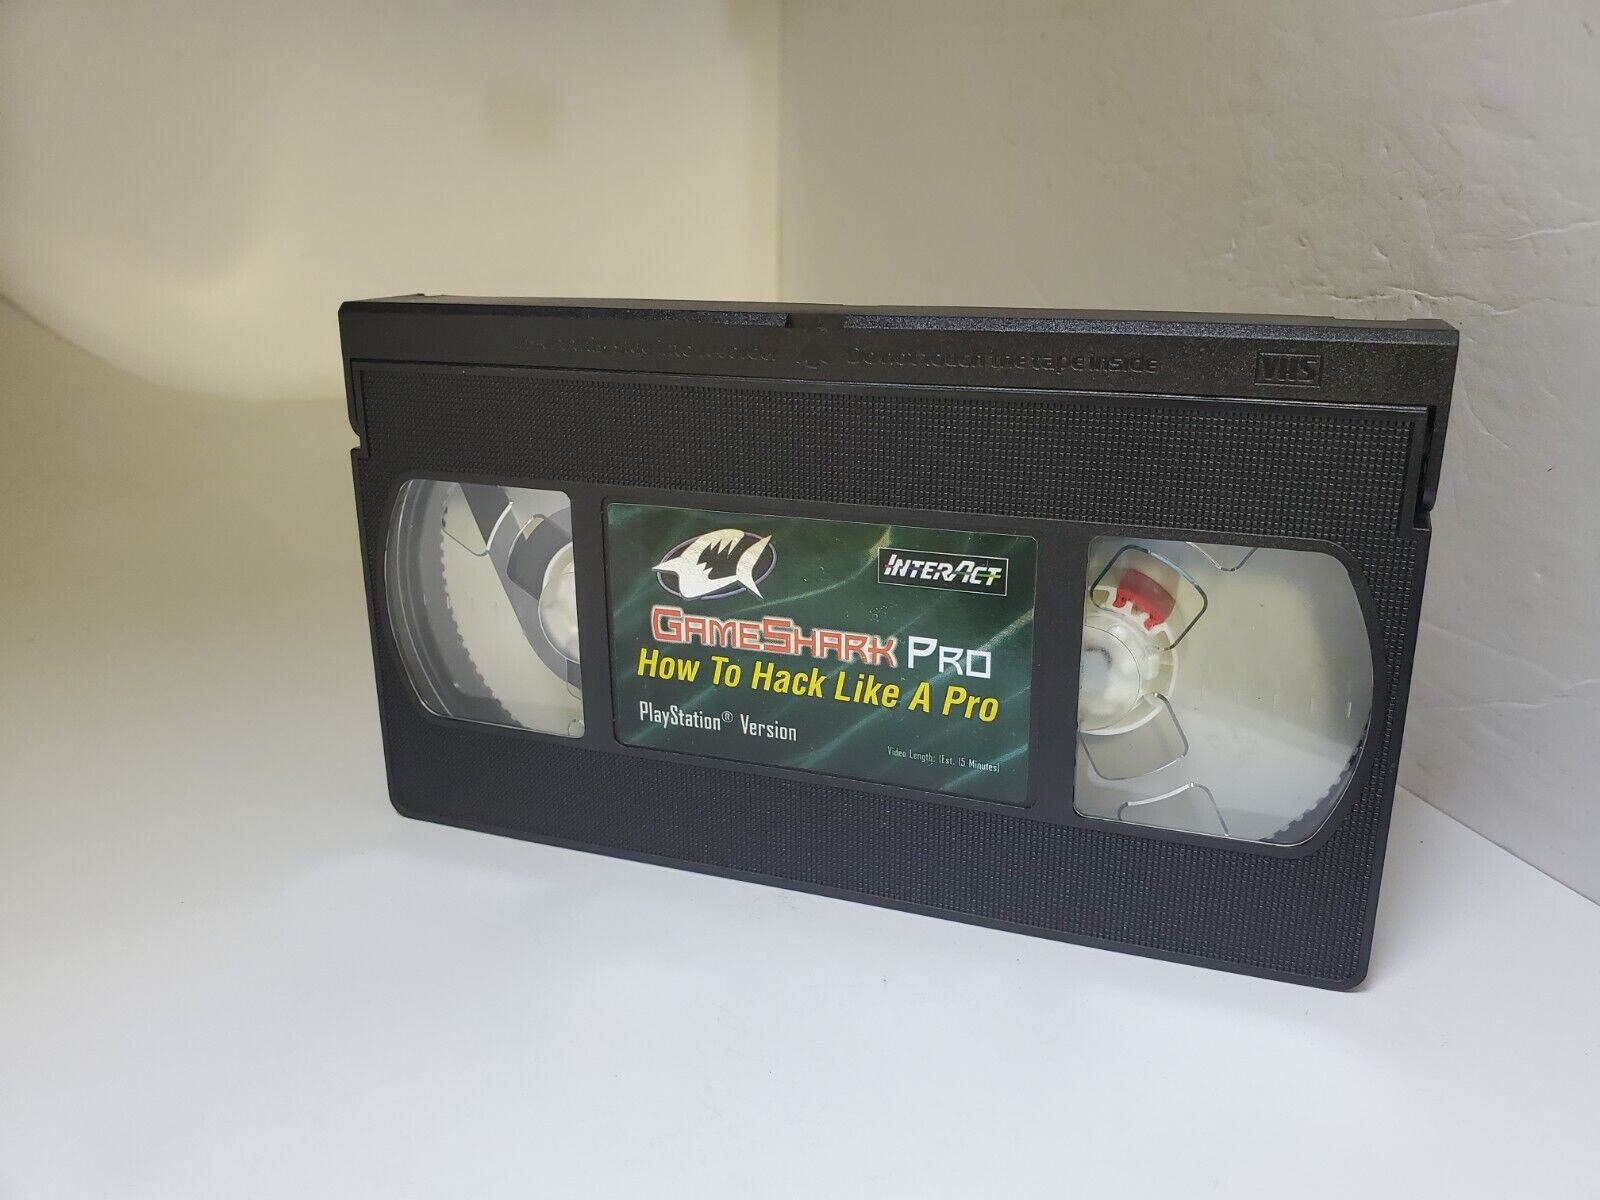 NEW GameShark Pro How To Hack Like a Pro VHS Playstation -TAPE ONLY G25